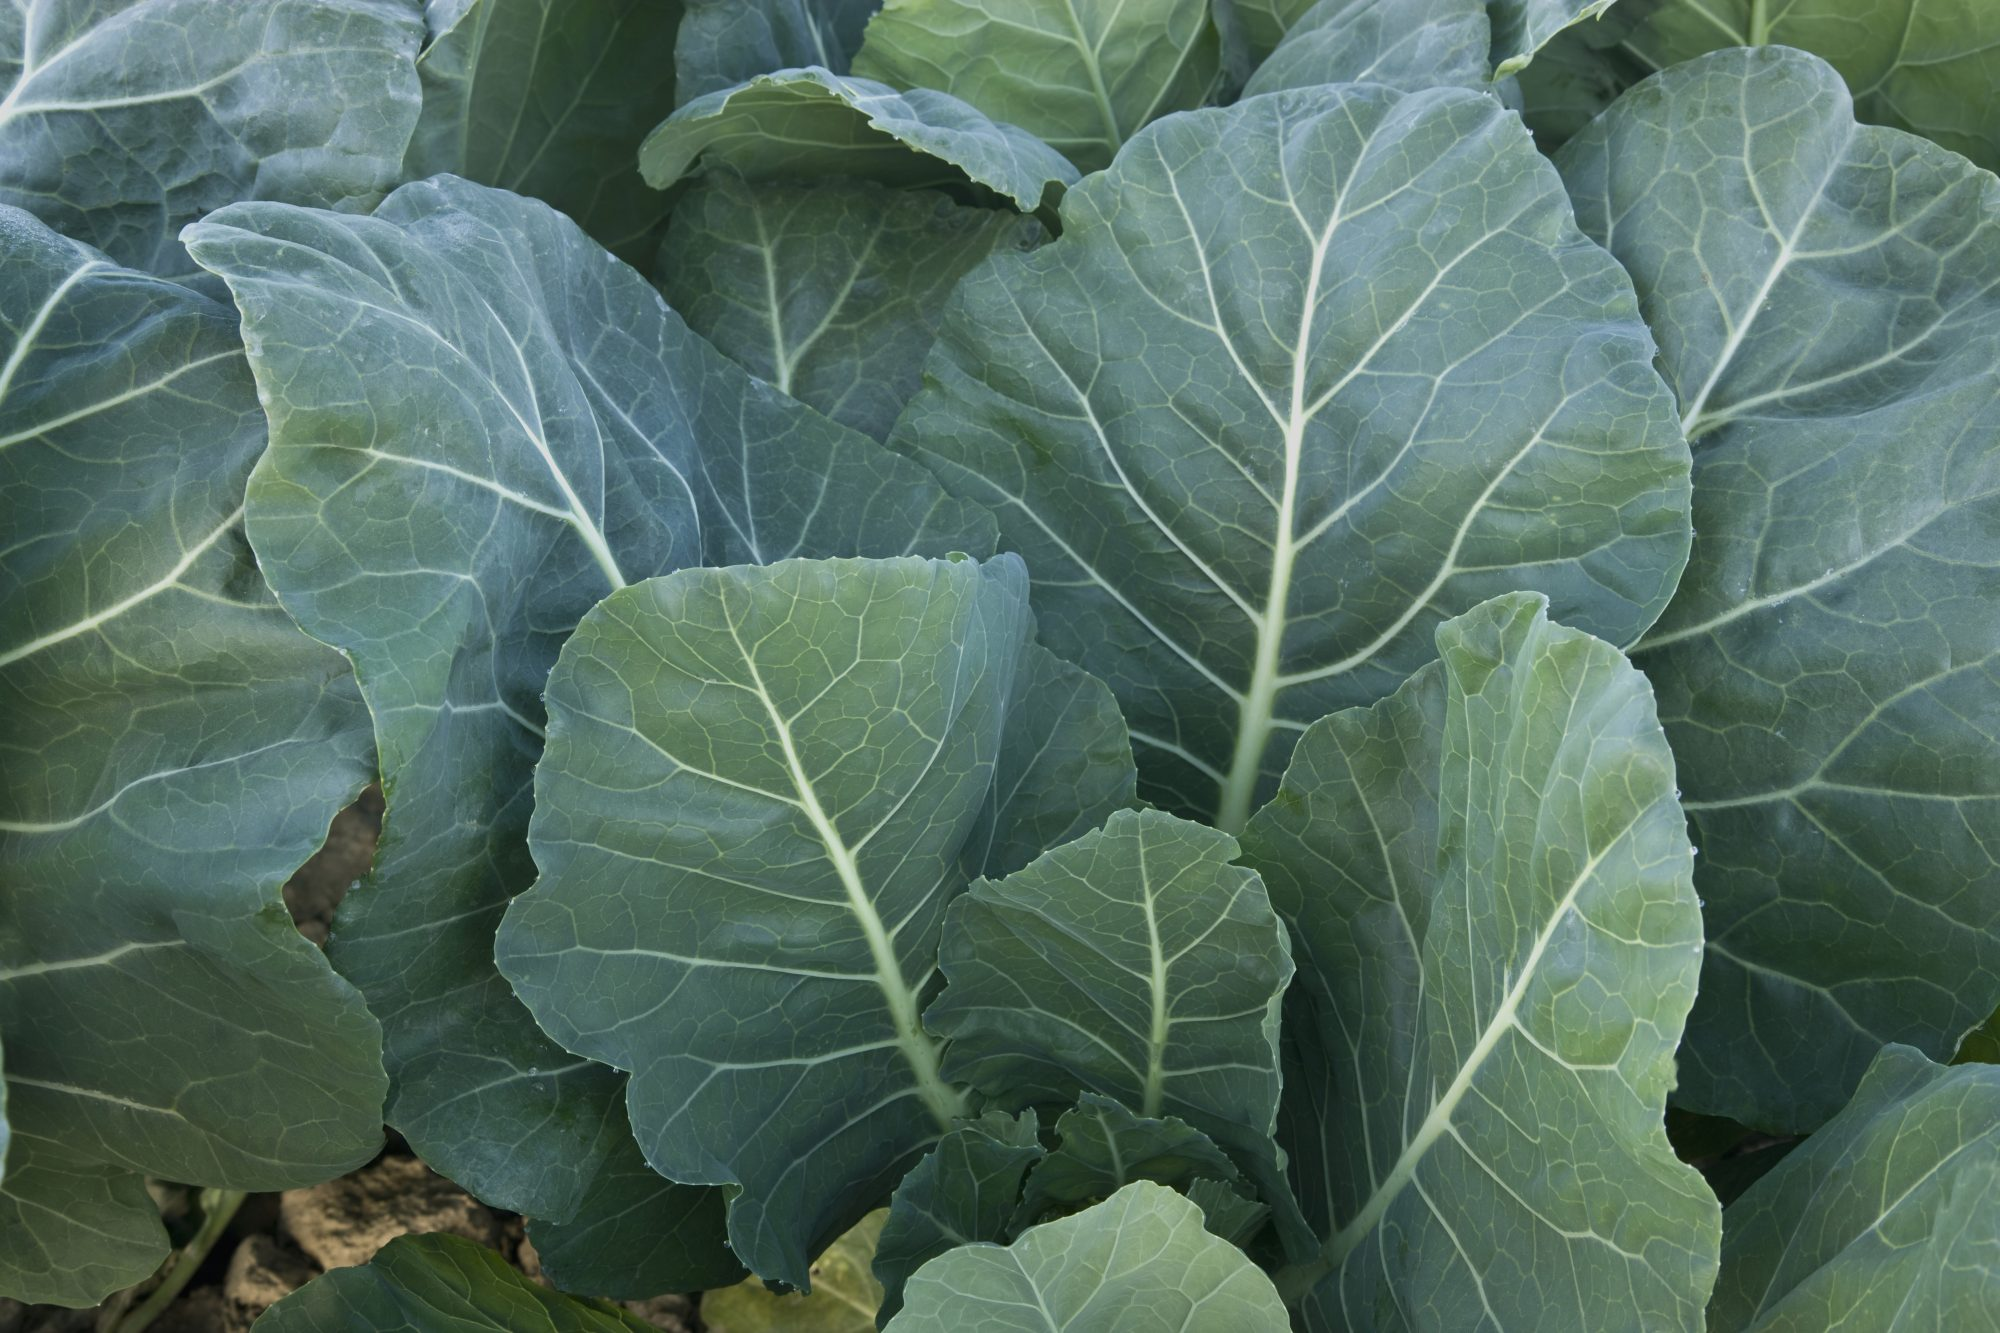 Myth #4: Collard greens are difficult to prepare.